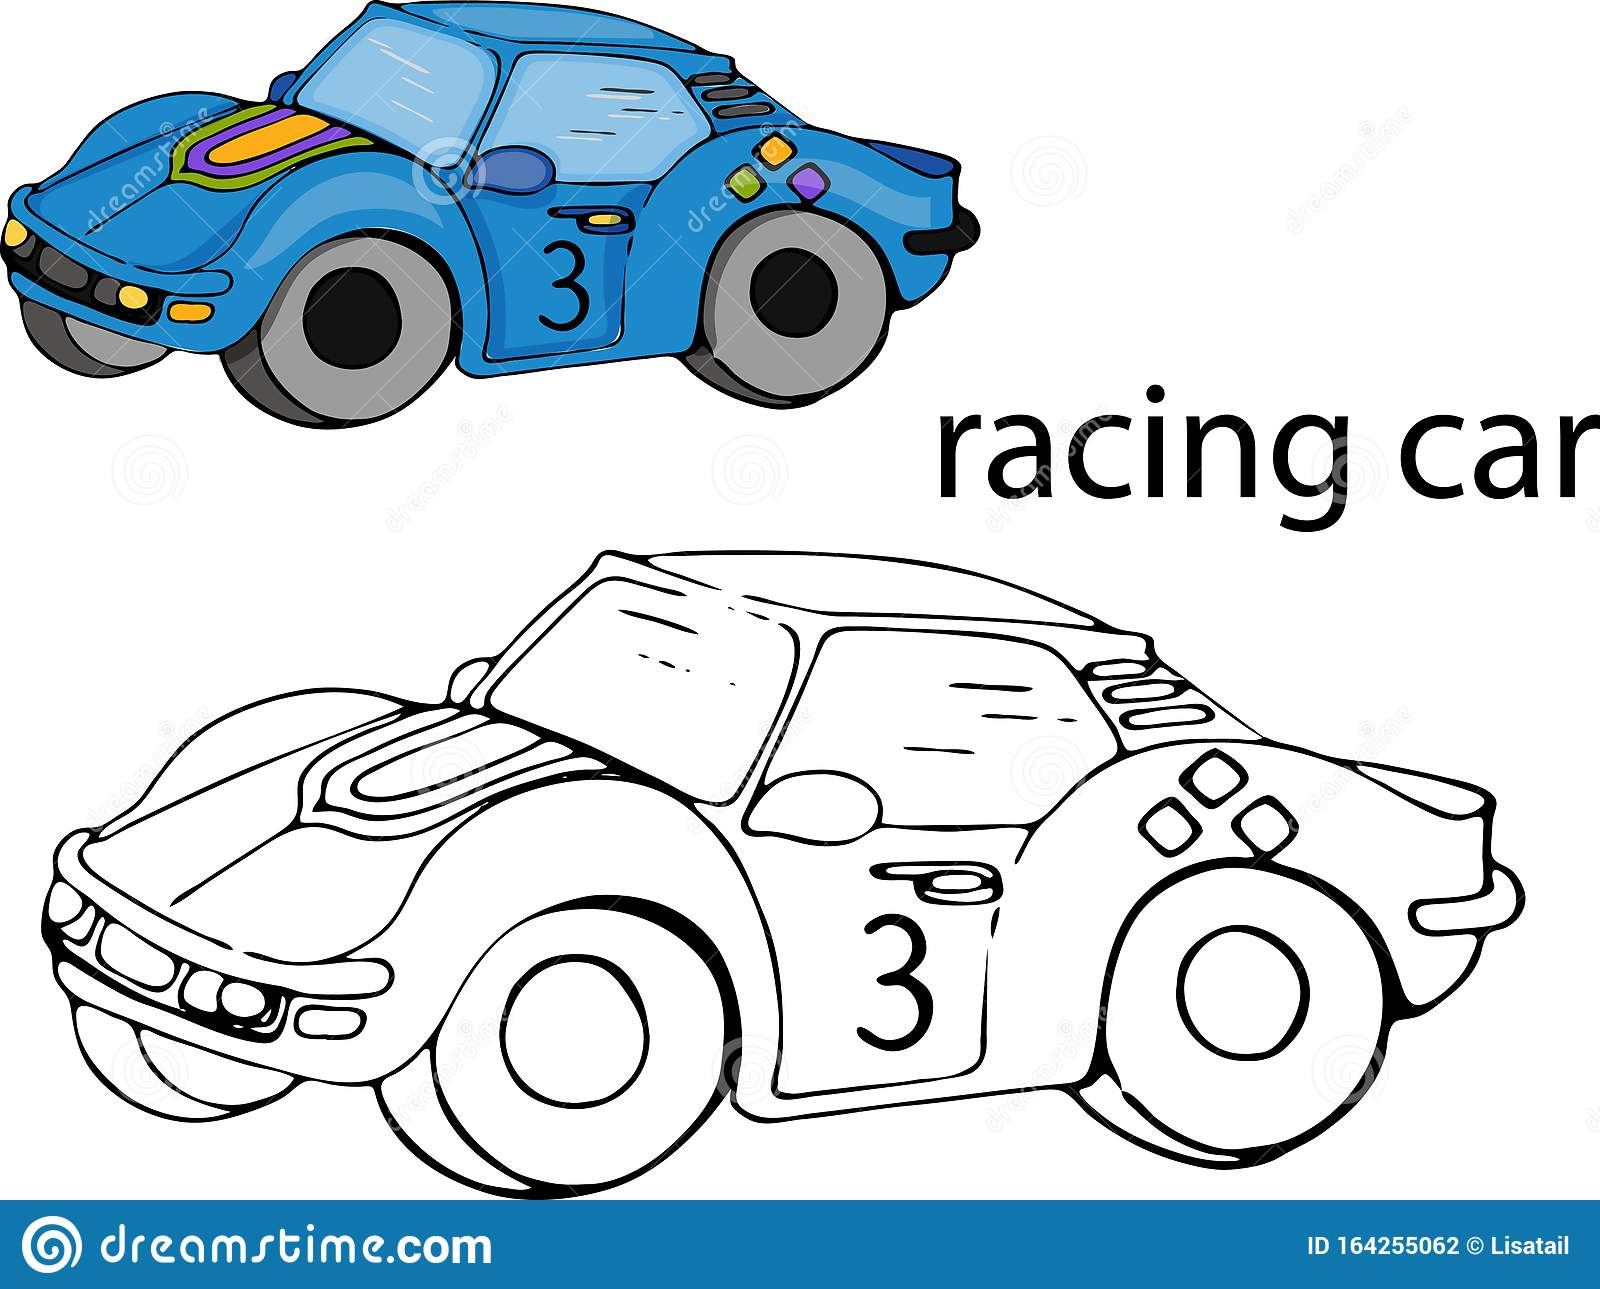 Dirt Race Car Coloring Pages Free Printabler Kids Cool2bkids ... | 1289x1600